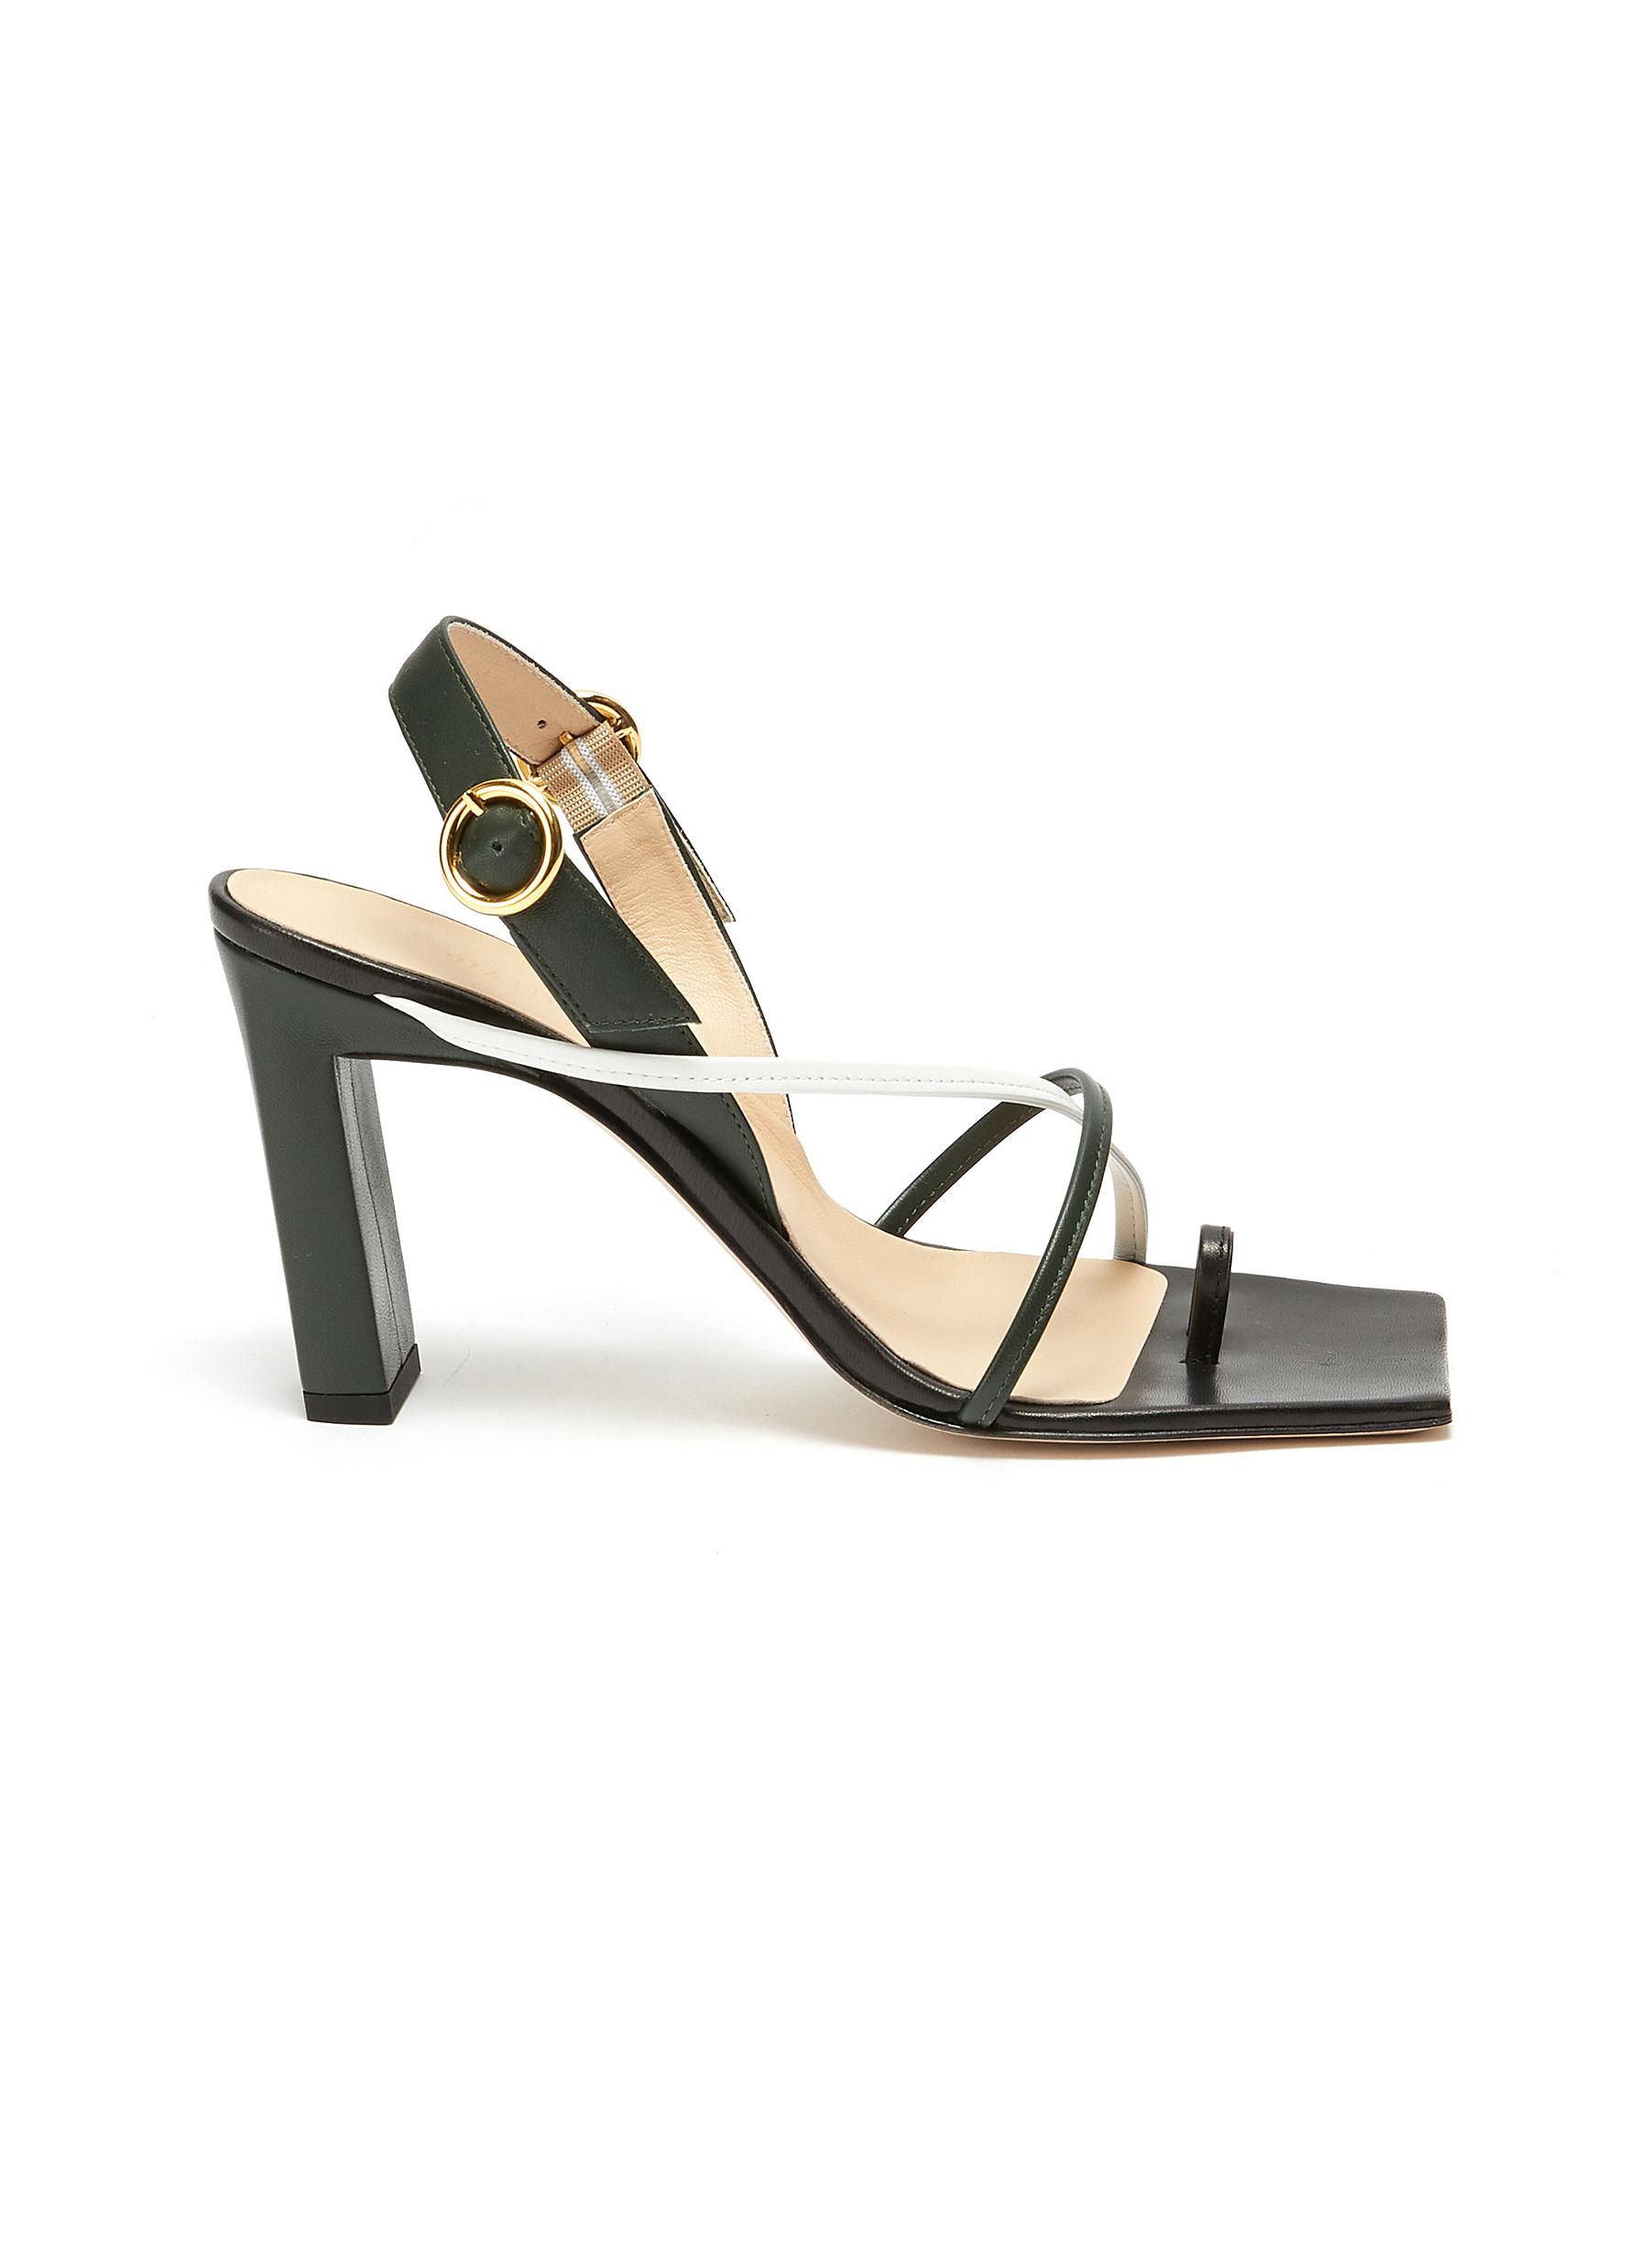 Wandler High Heels Elza Square toe strappy slingback sandals